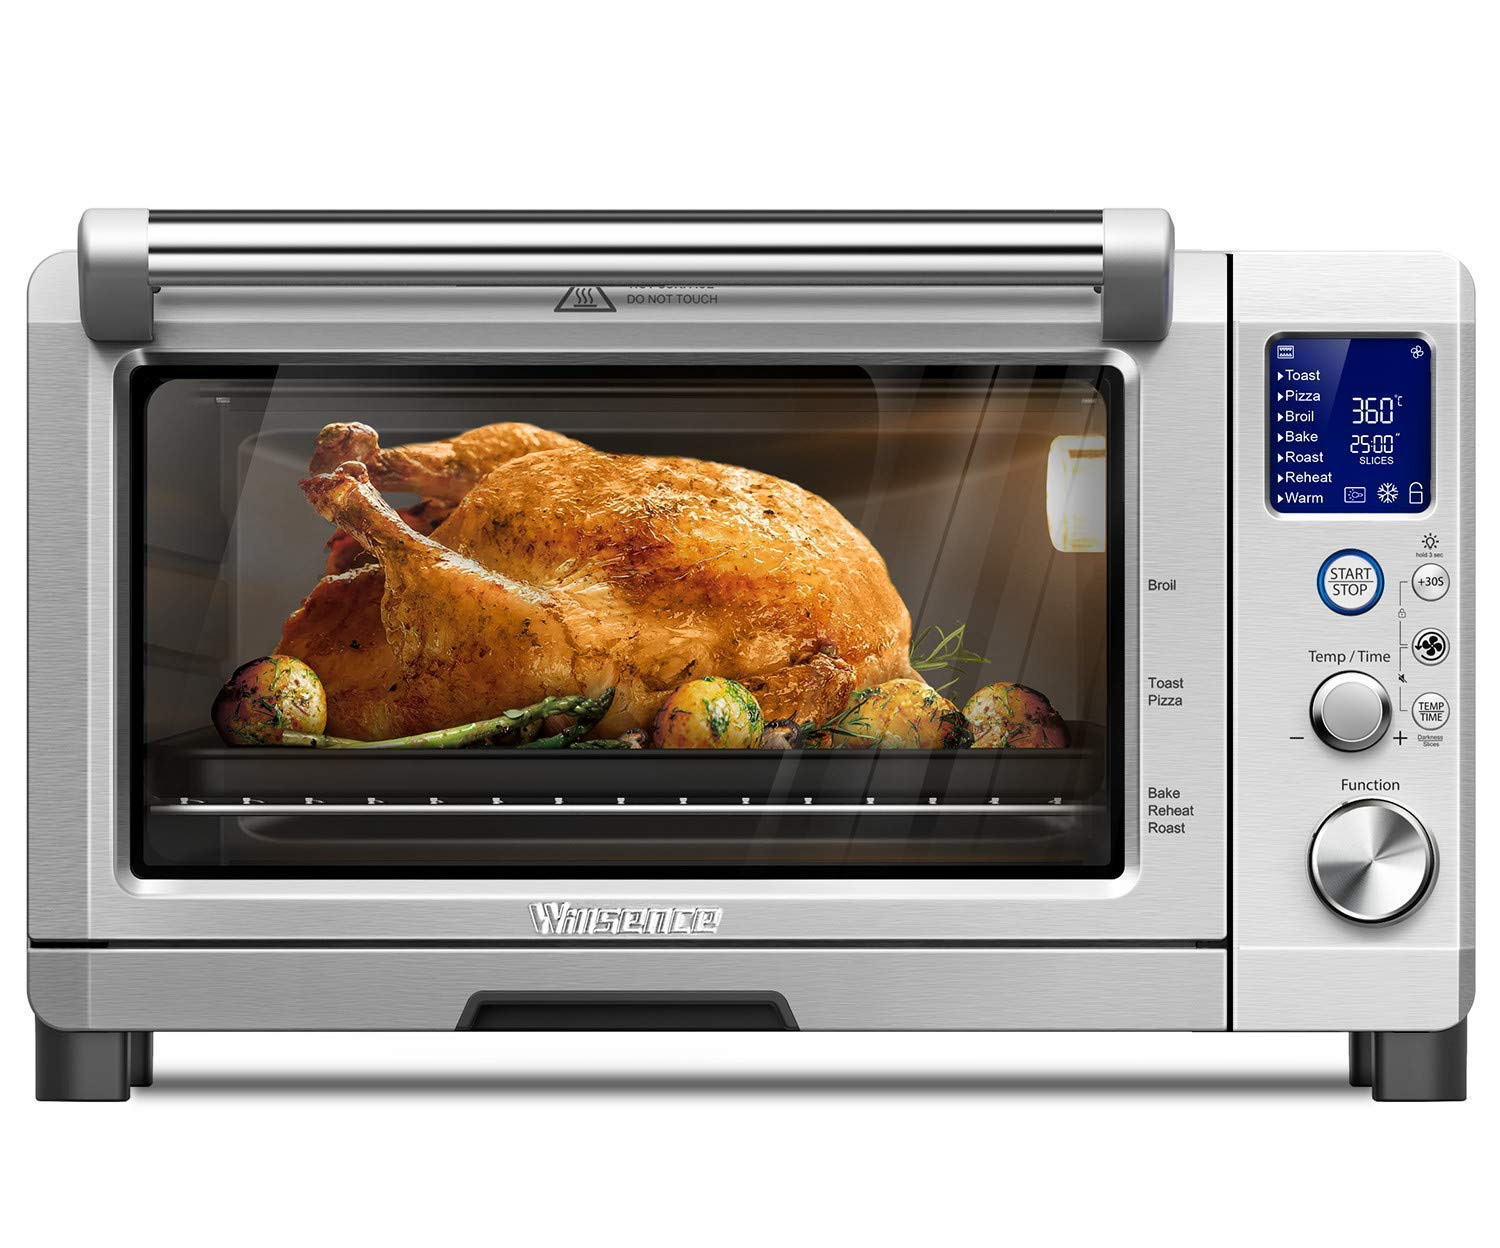 Toaster Oven 4 Slice, Utility Convection Toaster Oven for Evenly Toast/Bake/Broil/Roast, Convenient Digital Function Display with 1600W Efficient Heating, Includes Toast Rack and Baking Pan